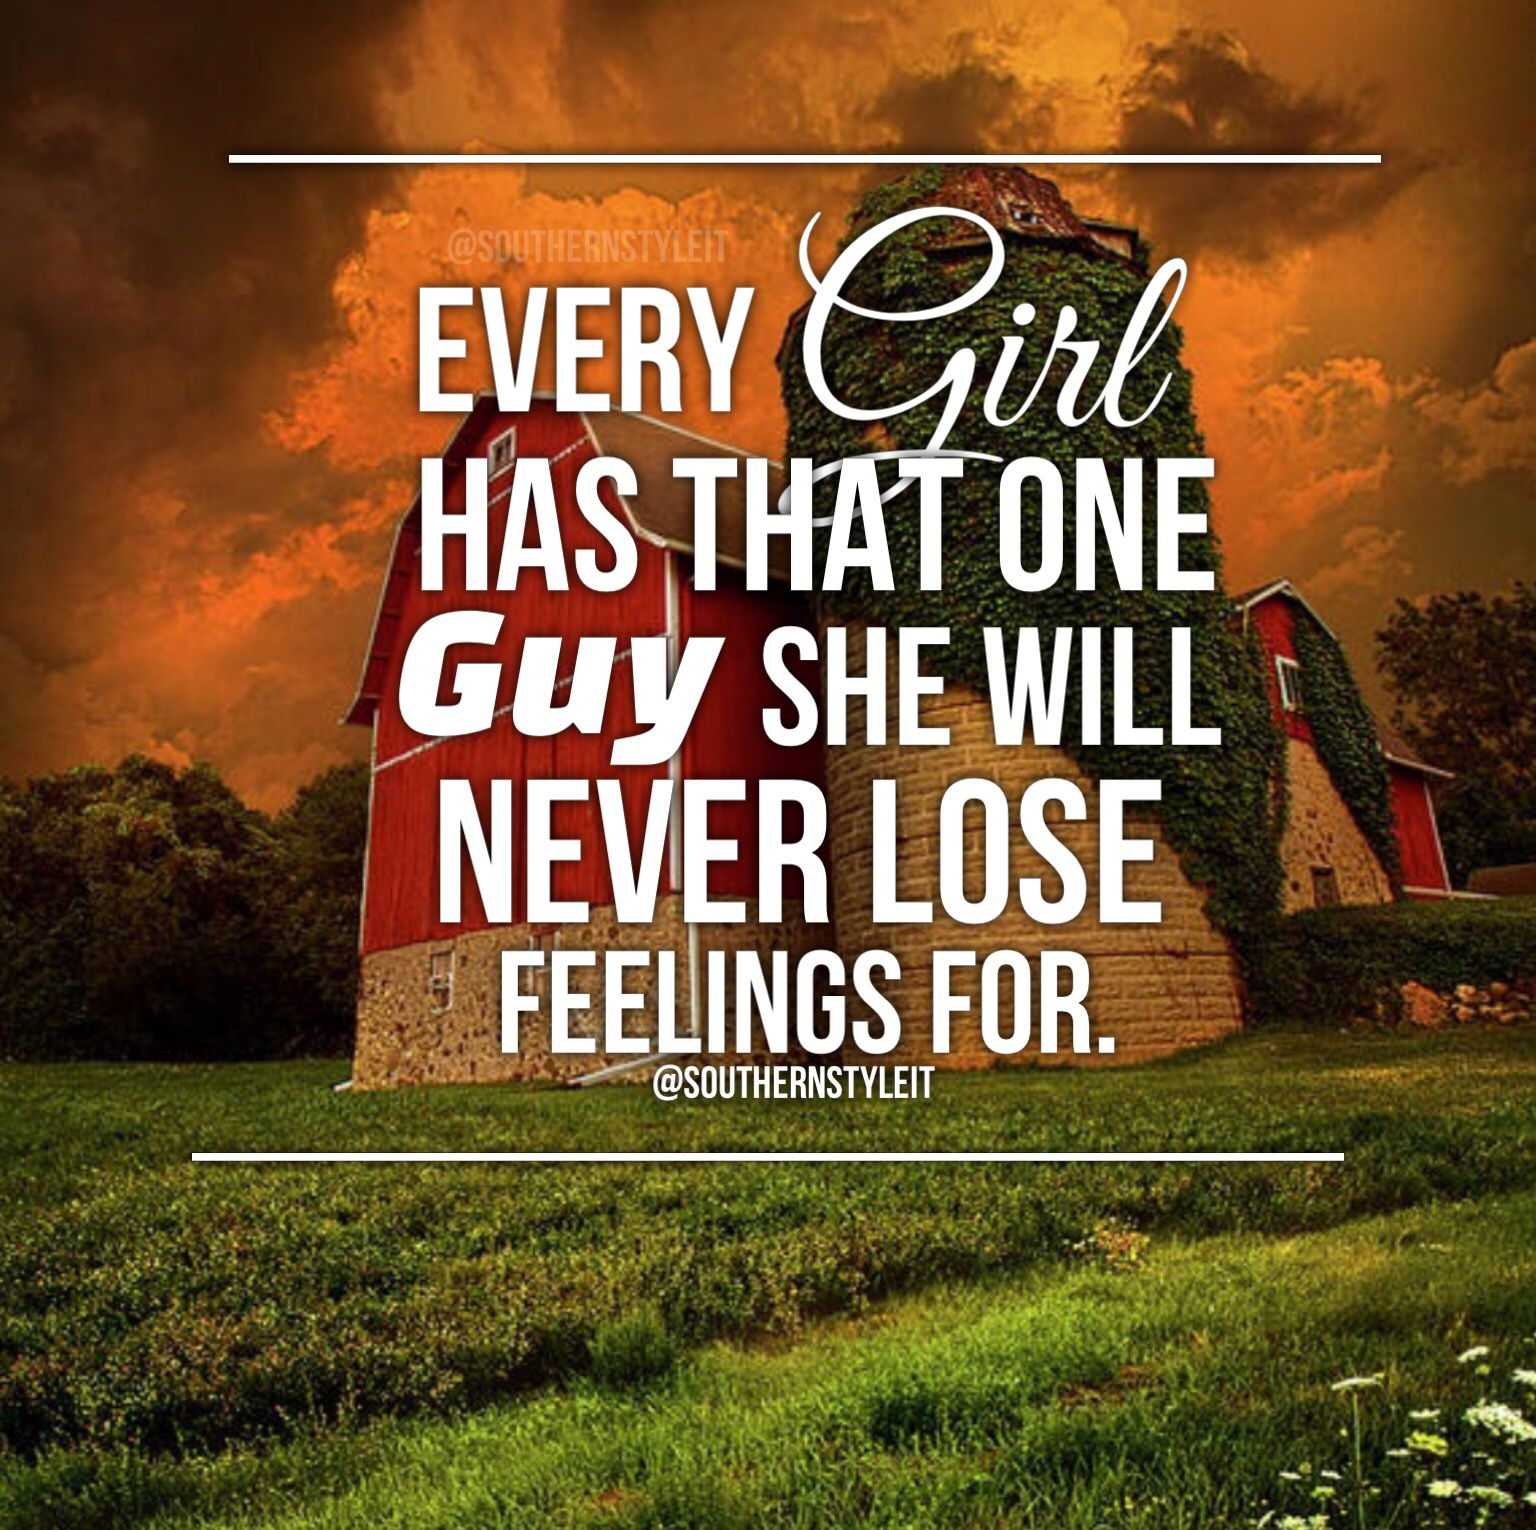 Country Life Quotes And Sayings Every Girl Has That One Guy She Will Never Lose Feelings For